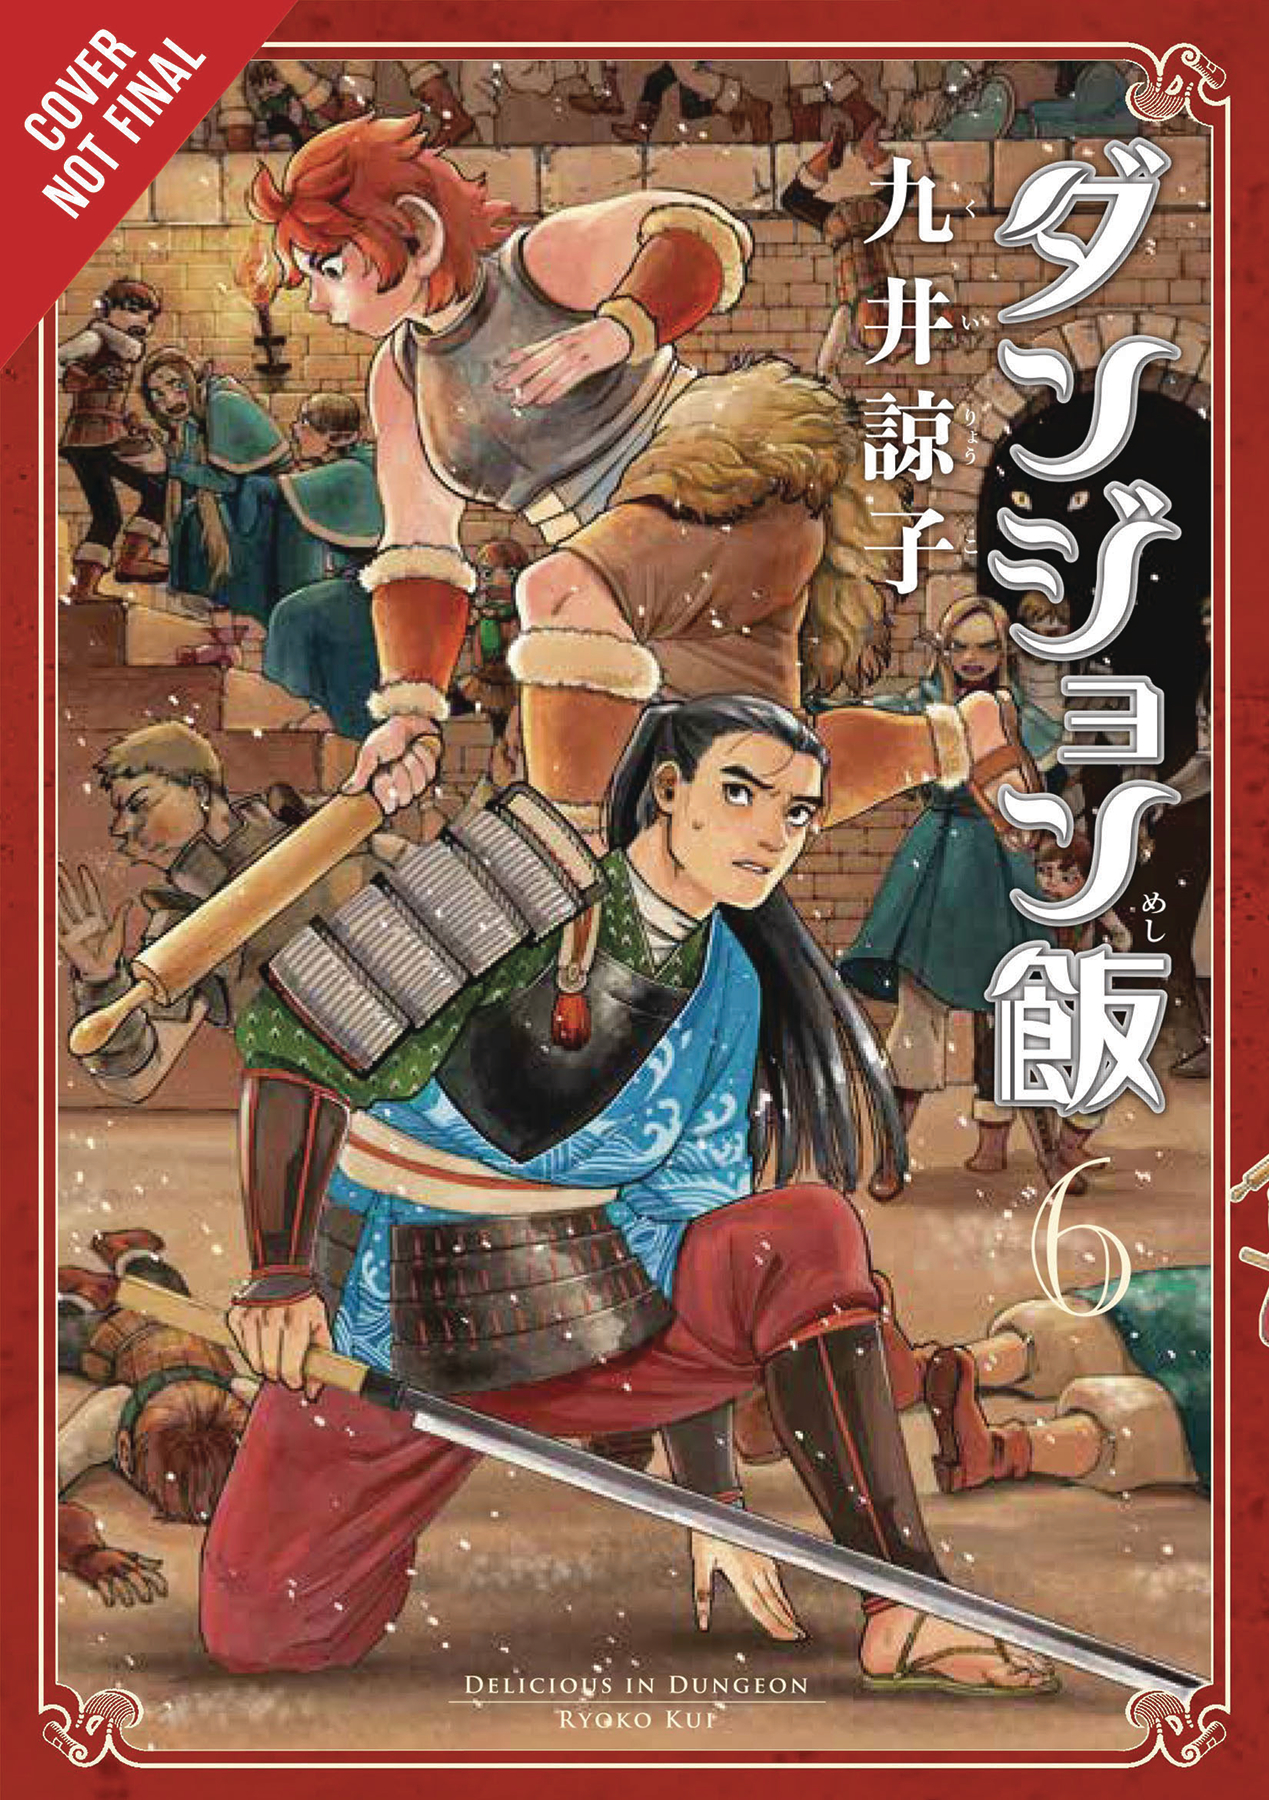 DELICIOUS IN DUNGEON GN VOL 06